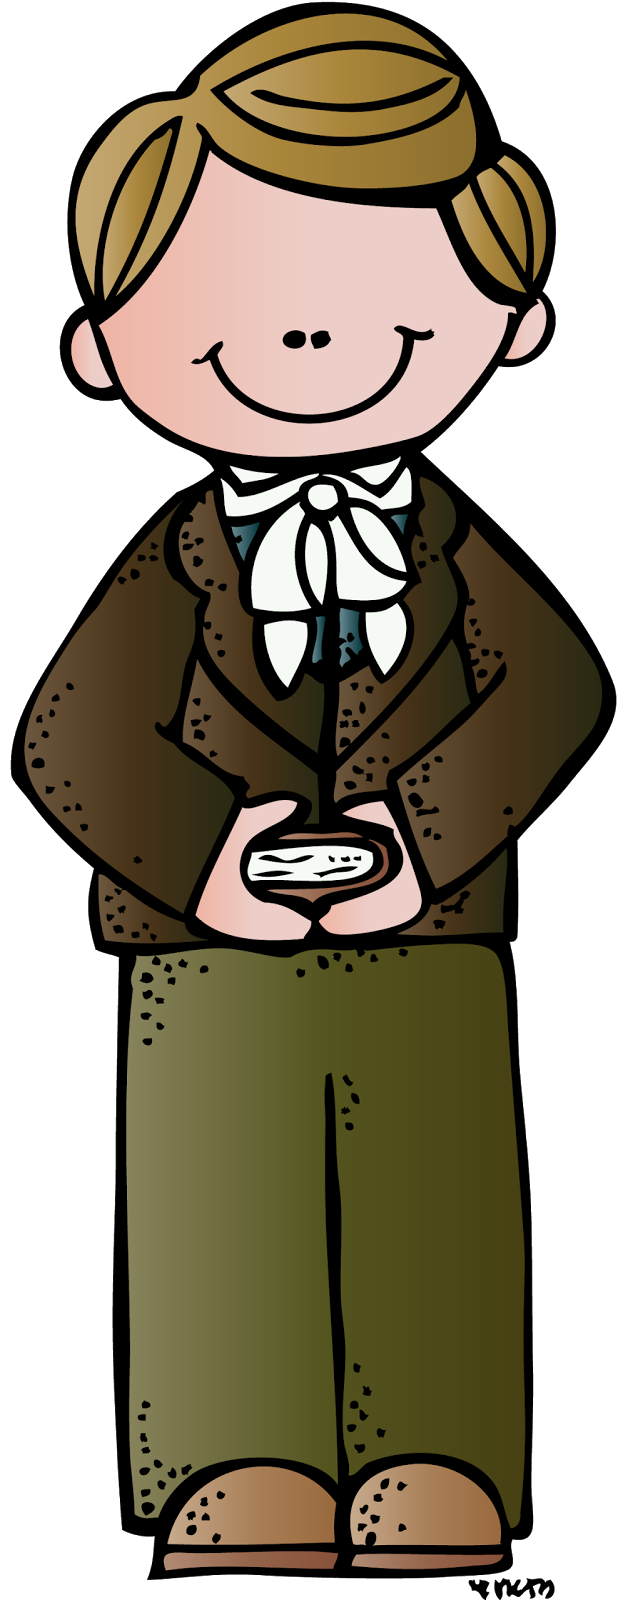 Joseph smith clipart.